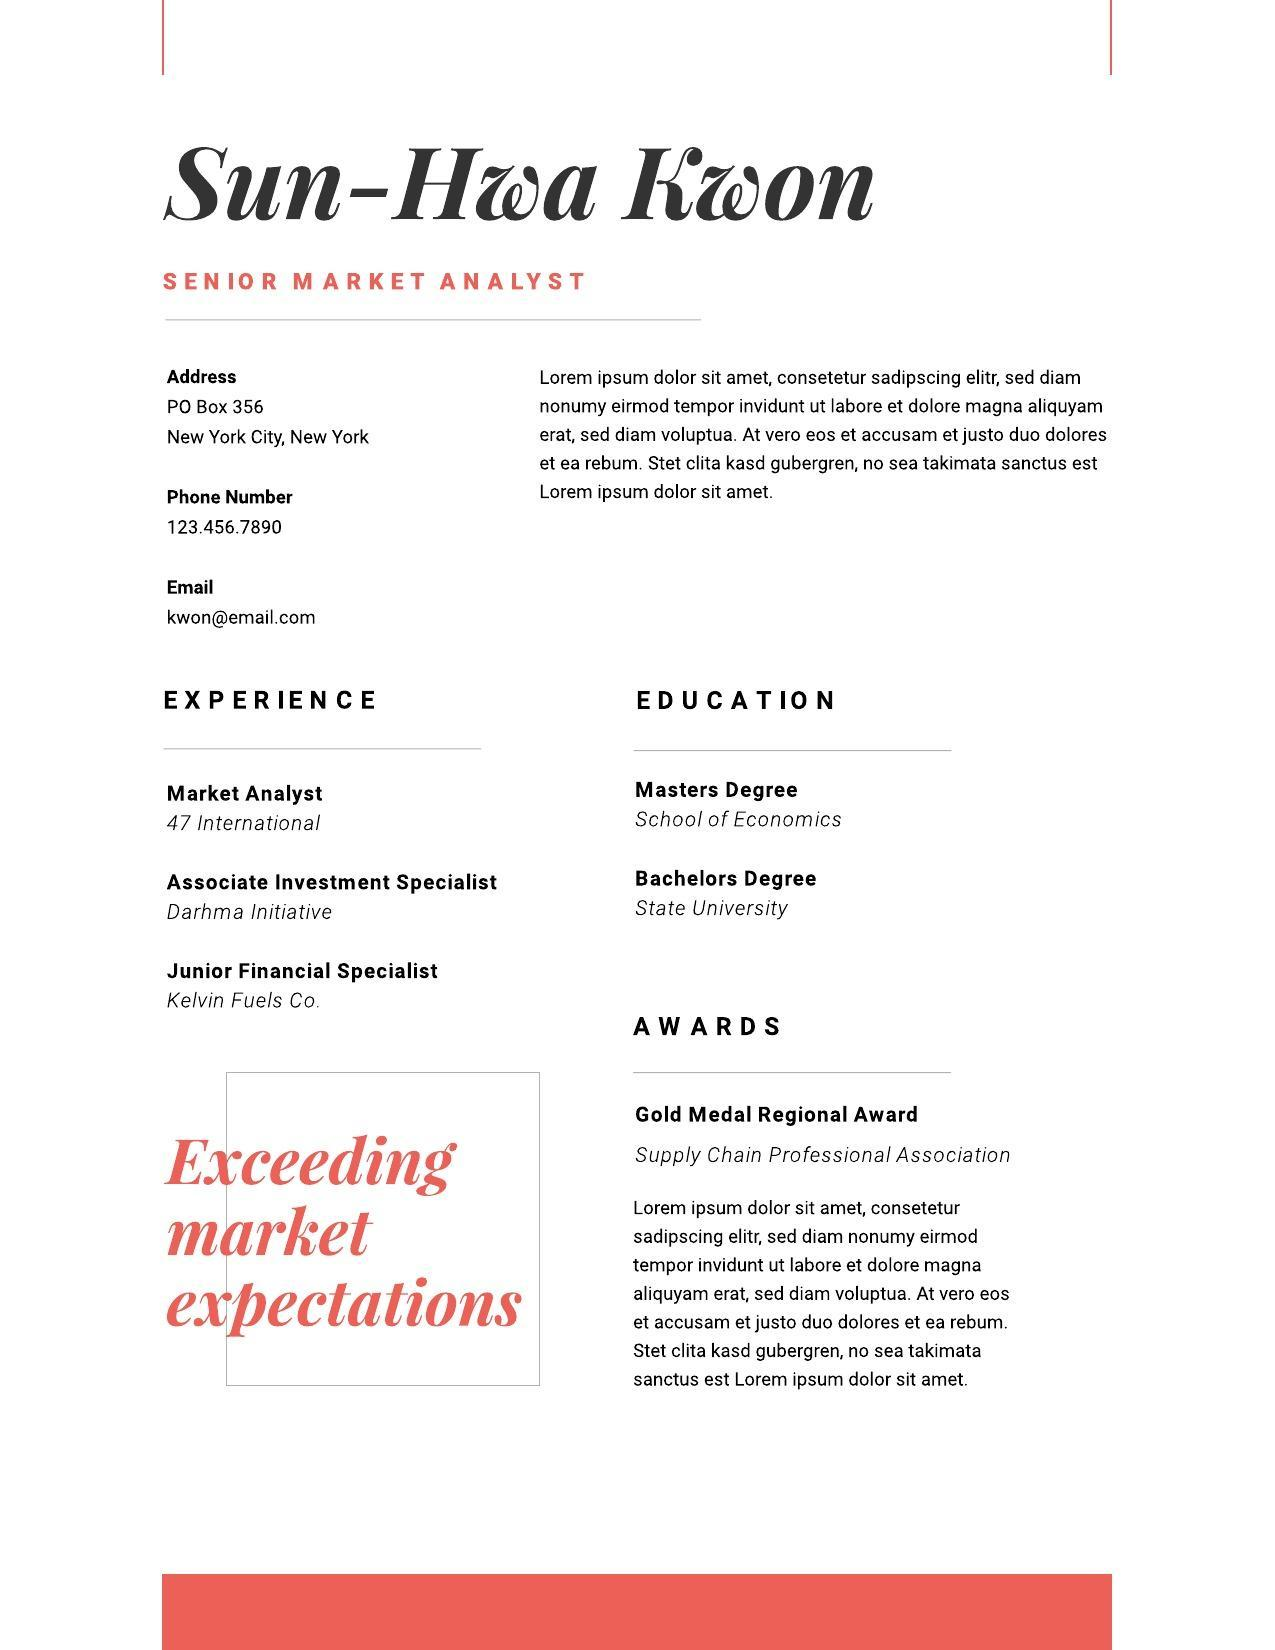 resume examples writing tips for lucidpress and samples image01 ot staff nurse fast food Resume Resume Writing Tips And Samples